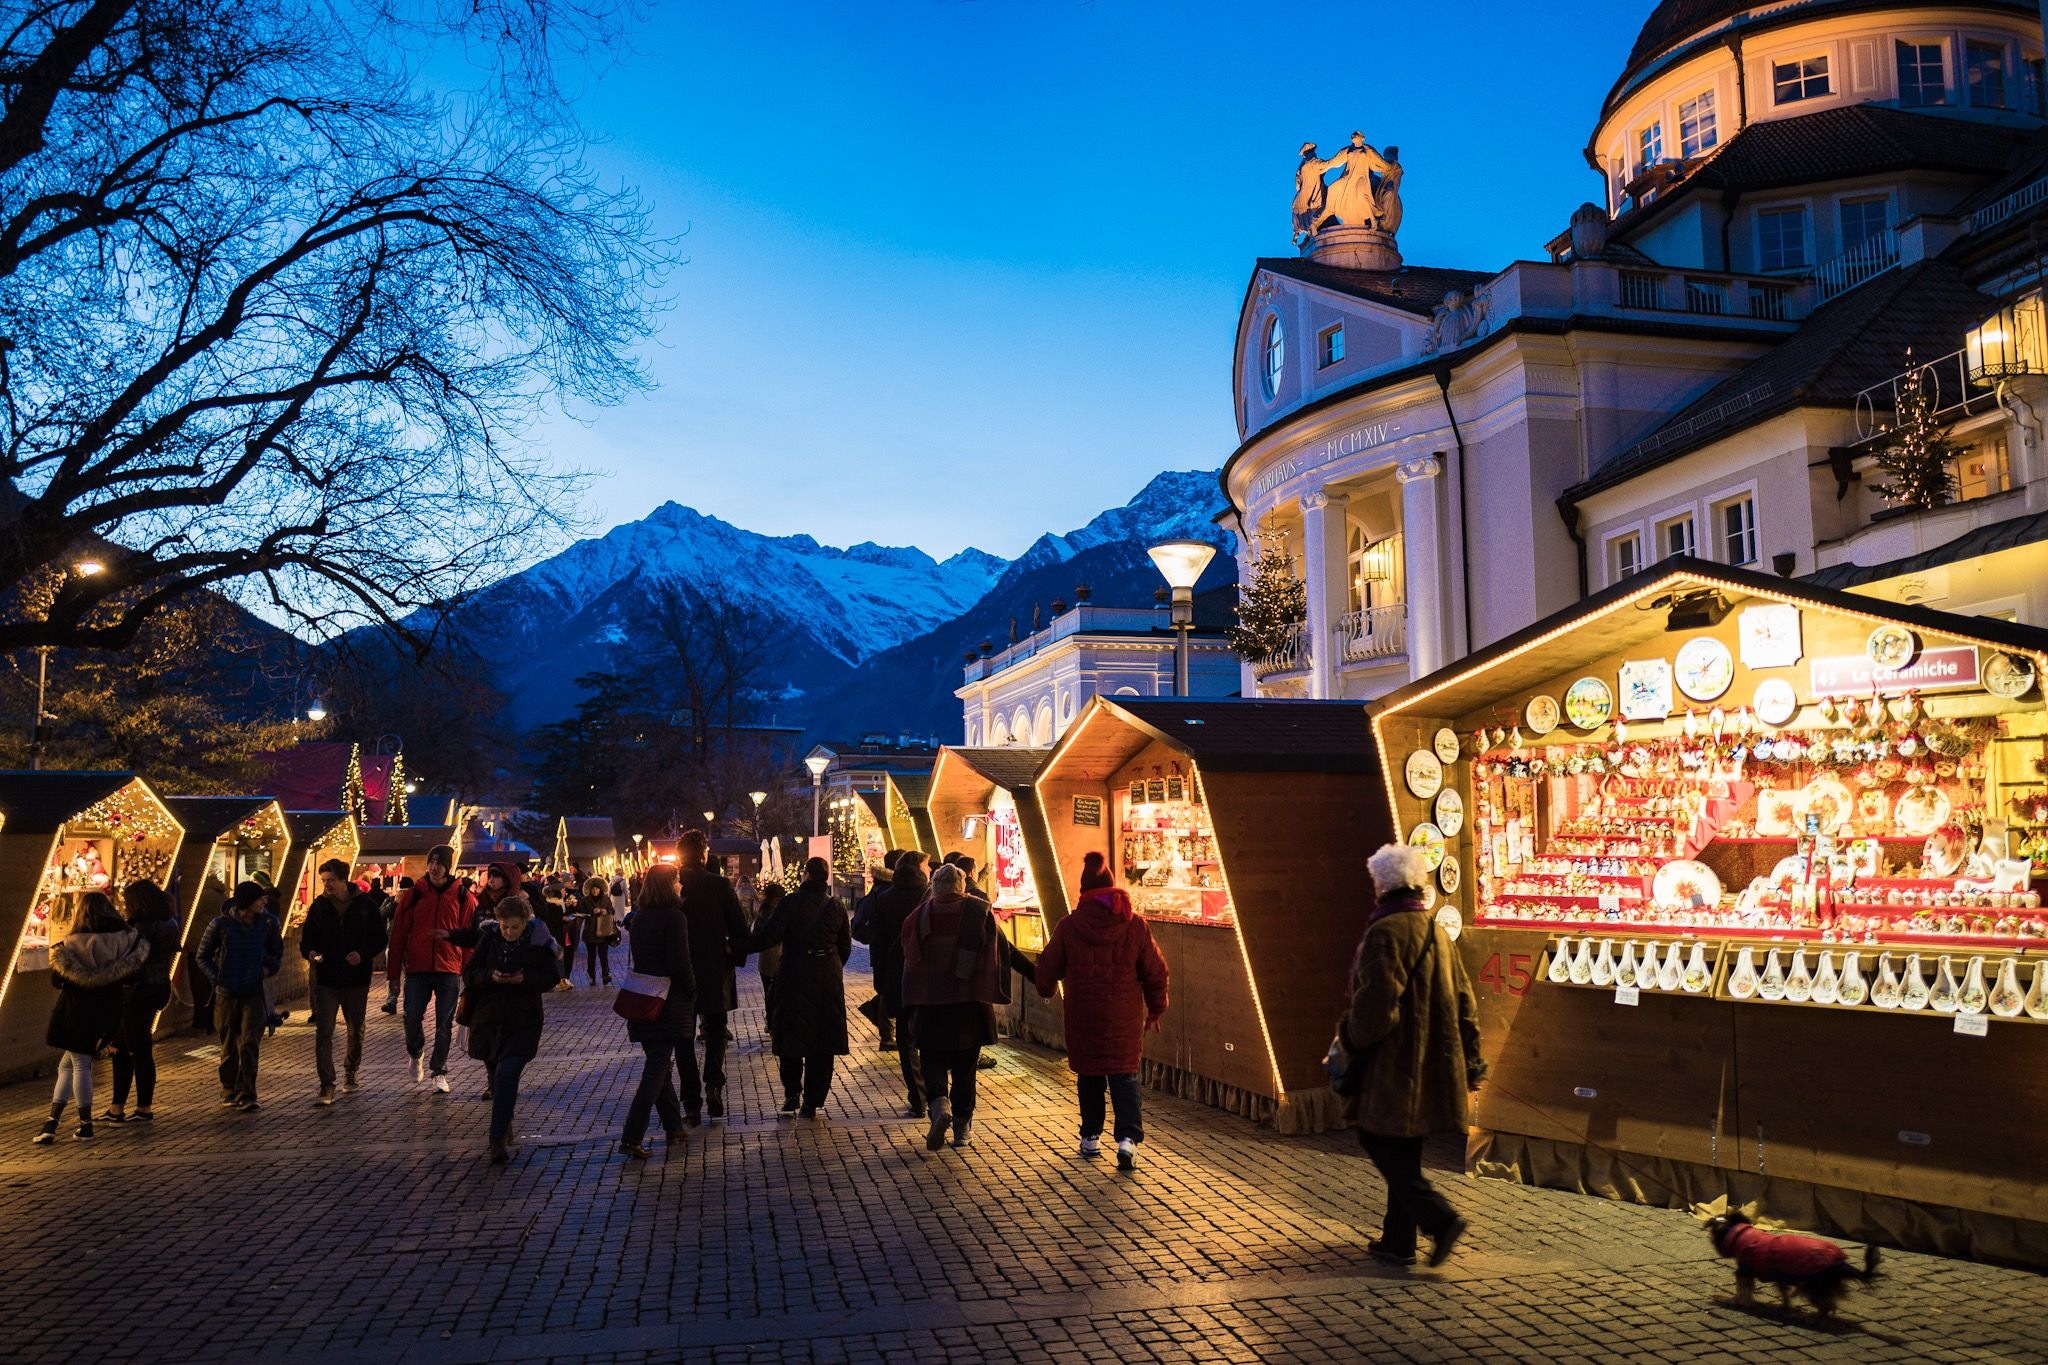 Merano Xmas Markets, one of my favourites with the sunset setting by the lake. Bliss!